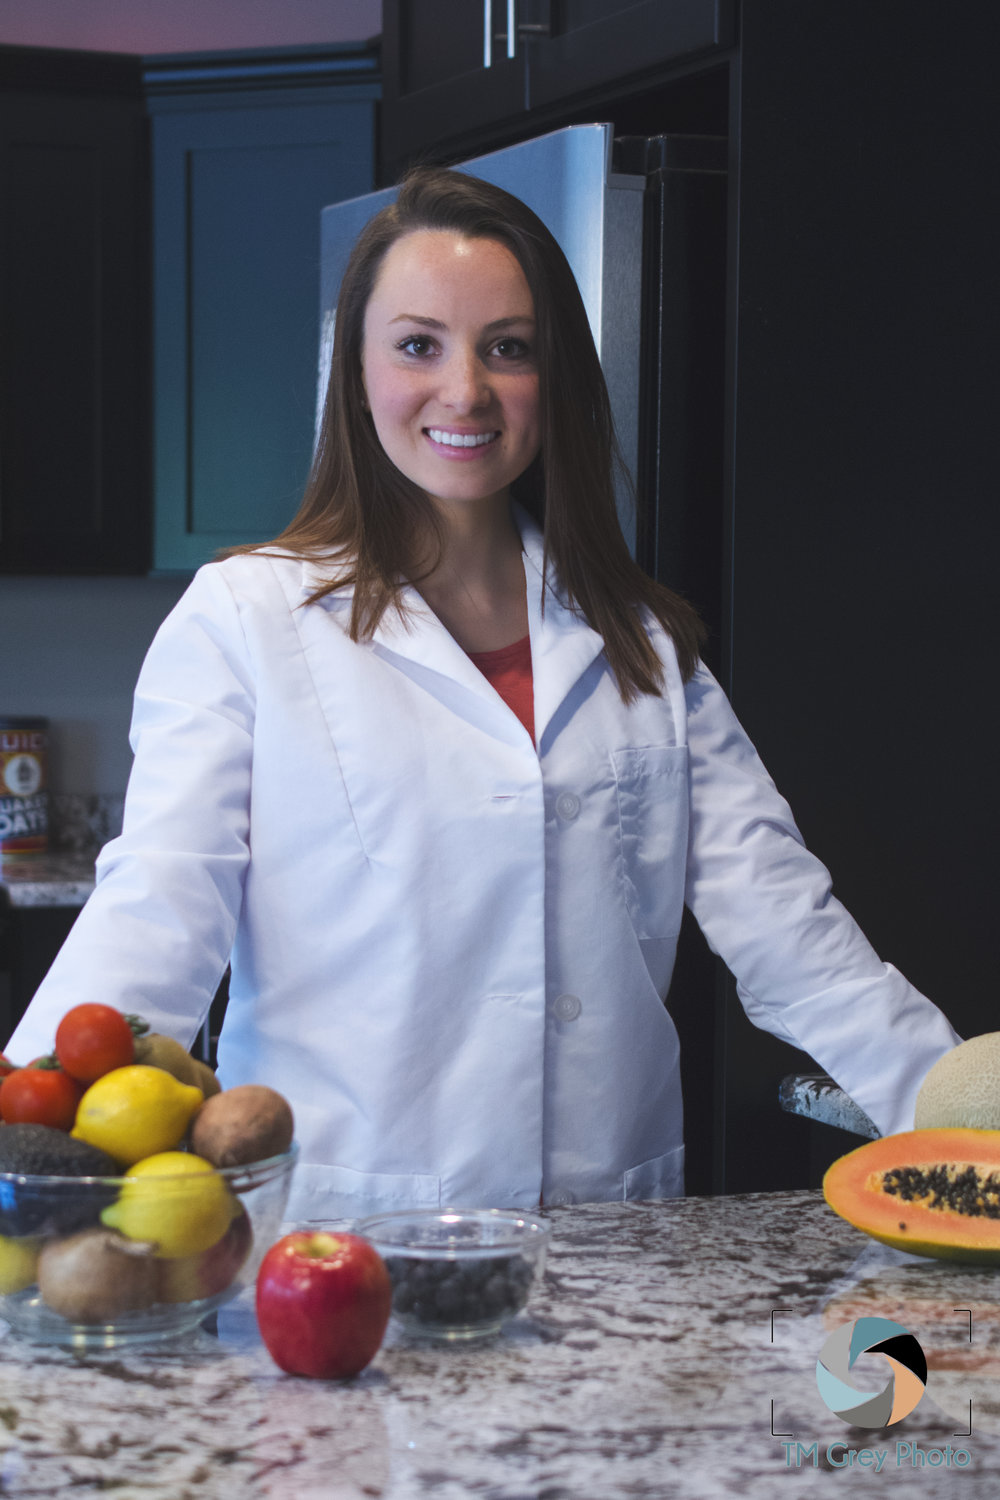 Katherine McNitt RD, LDN - She is a Registered Dietitian Nutritionist with experience in nutrition counseling, community programs, medical nutrition therapy, and food service management. She received her B.S. in Nutritional Science from Penn State and completed her dietetic internship at the University of Houston. Katherine's specialties include adult weight loss & weight management, rehabilitation nutrition, prenatal nutrition, and much more.